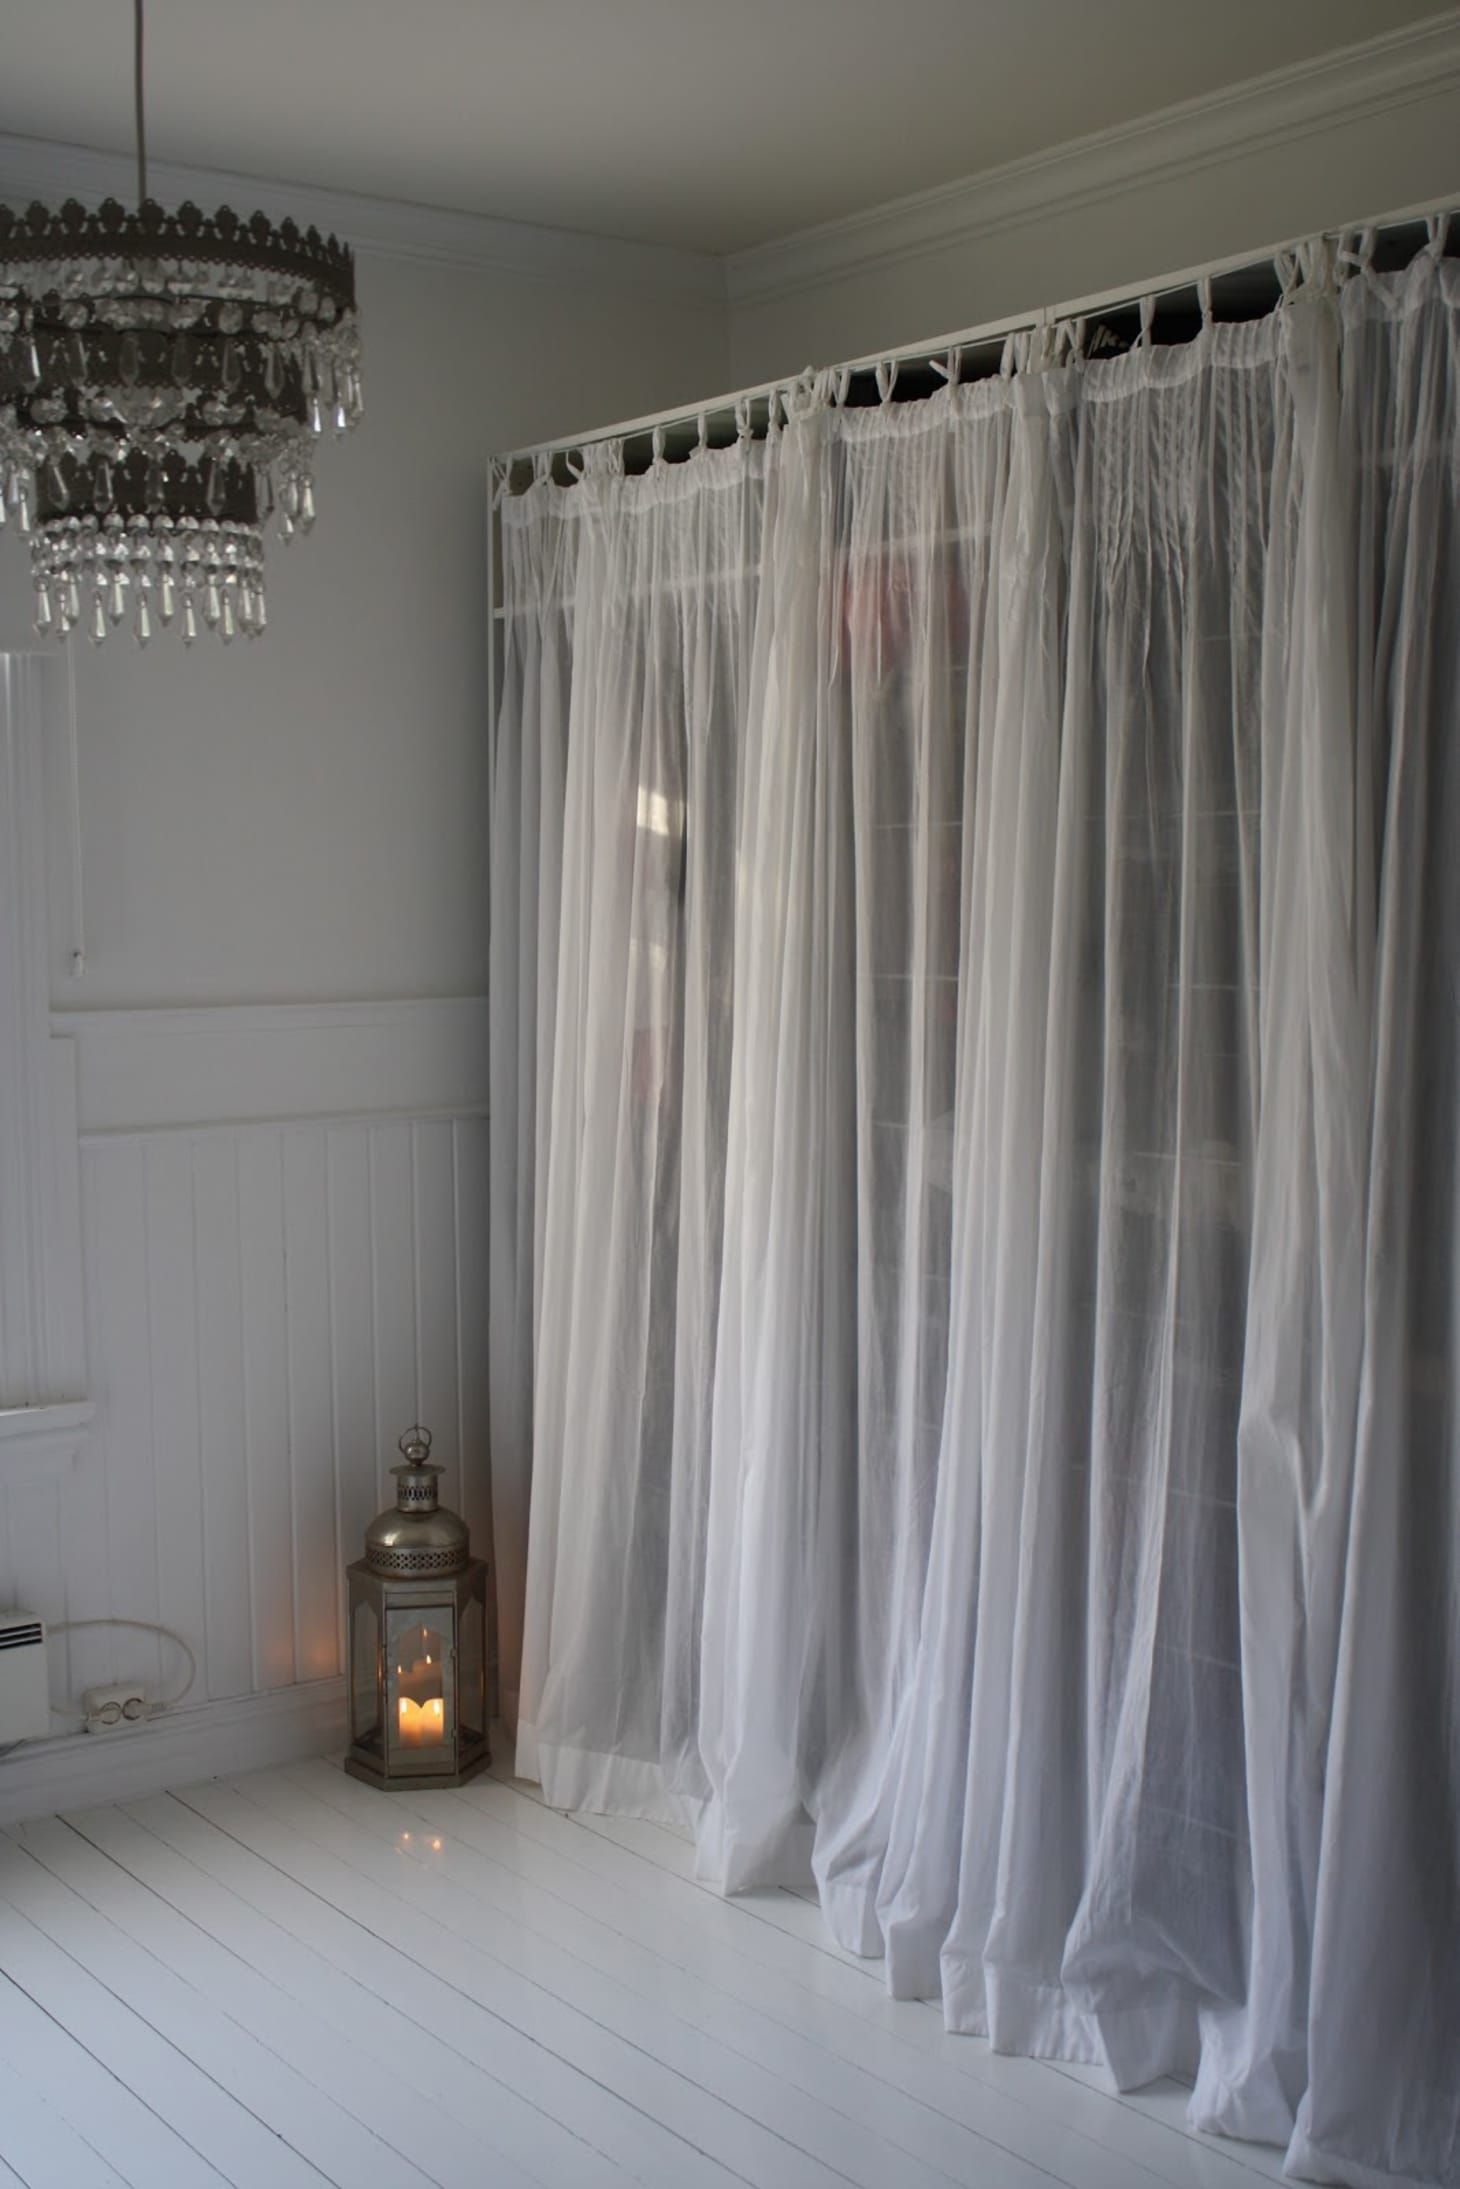 Project Ideas For Hiding Clutter With Curtains Amp Shades